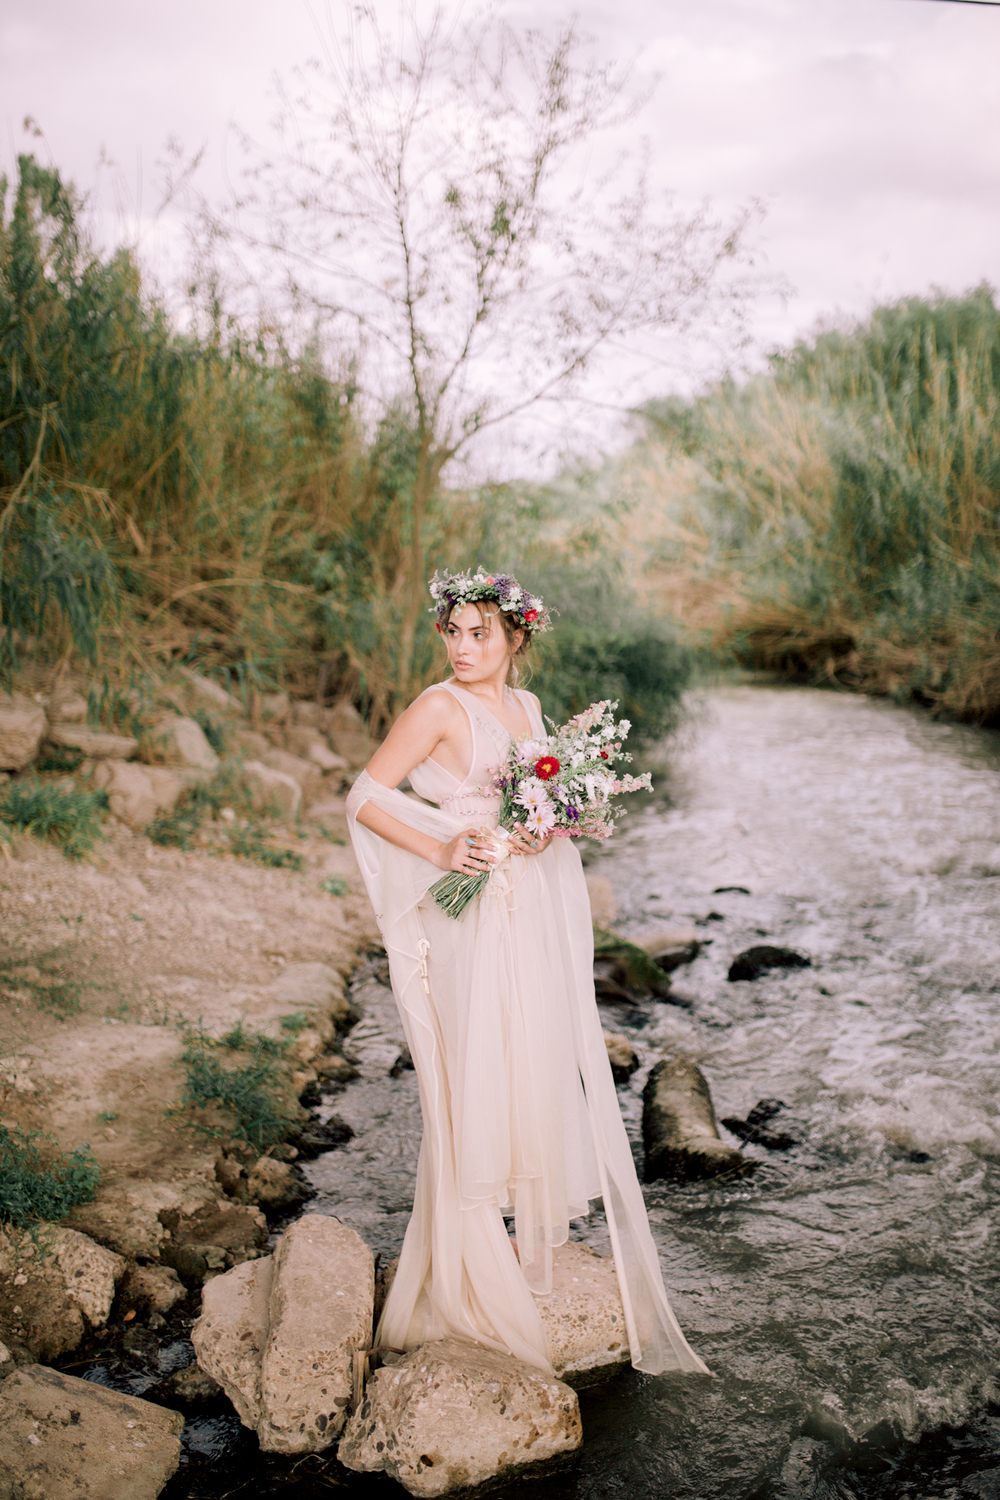 alaa-marzouk-alaamarzouk-photographer-boho-bridal-mcallen-wedding-bride-bohemian-austin-photographer-marzoukphotography-styled-rgvweddingphotographer-photographer-rio-grande-valley-19.jpg